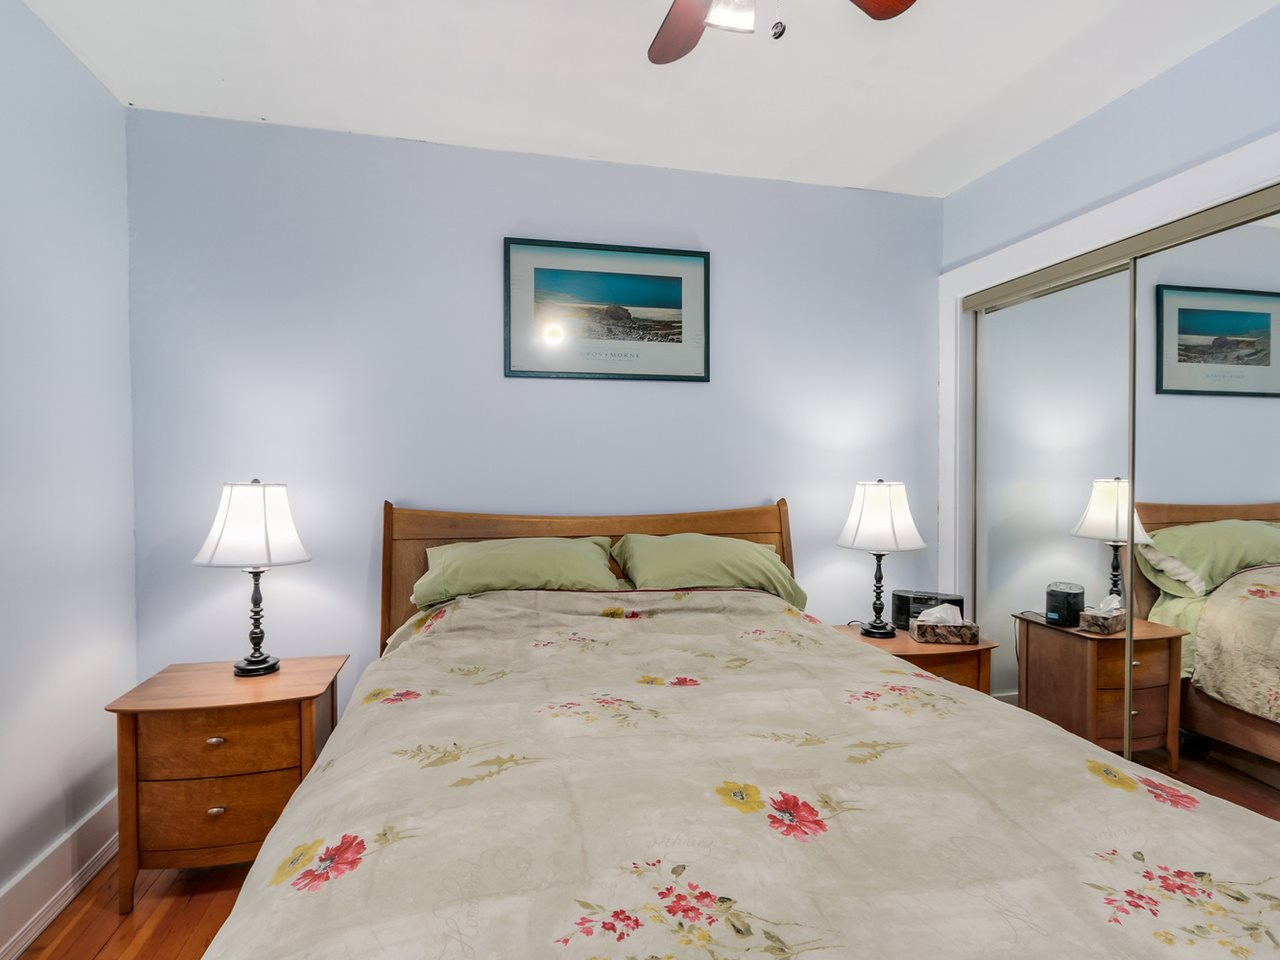 Photo 11: Photos: 1760 E 37TH AVENUE in Vancouver: Victoria VE House for sale (Vancouver East)  : MLS®# R2059026